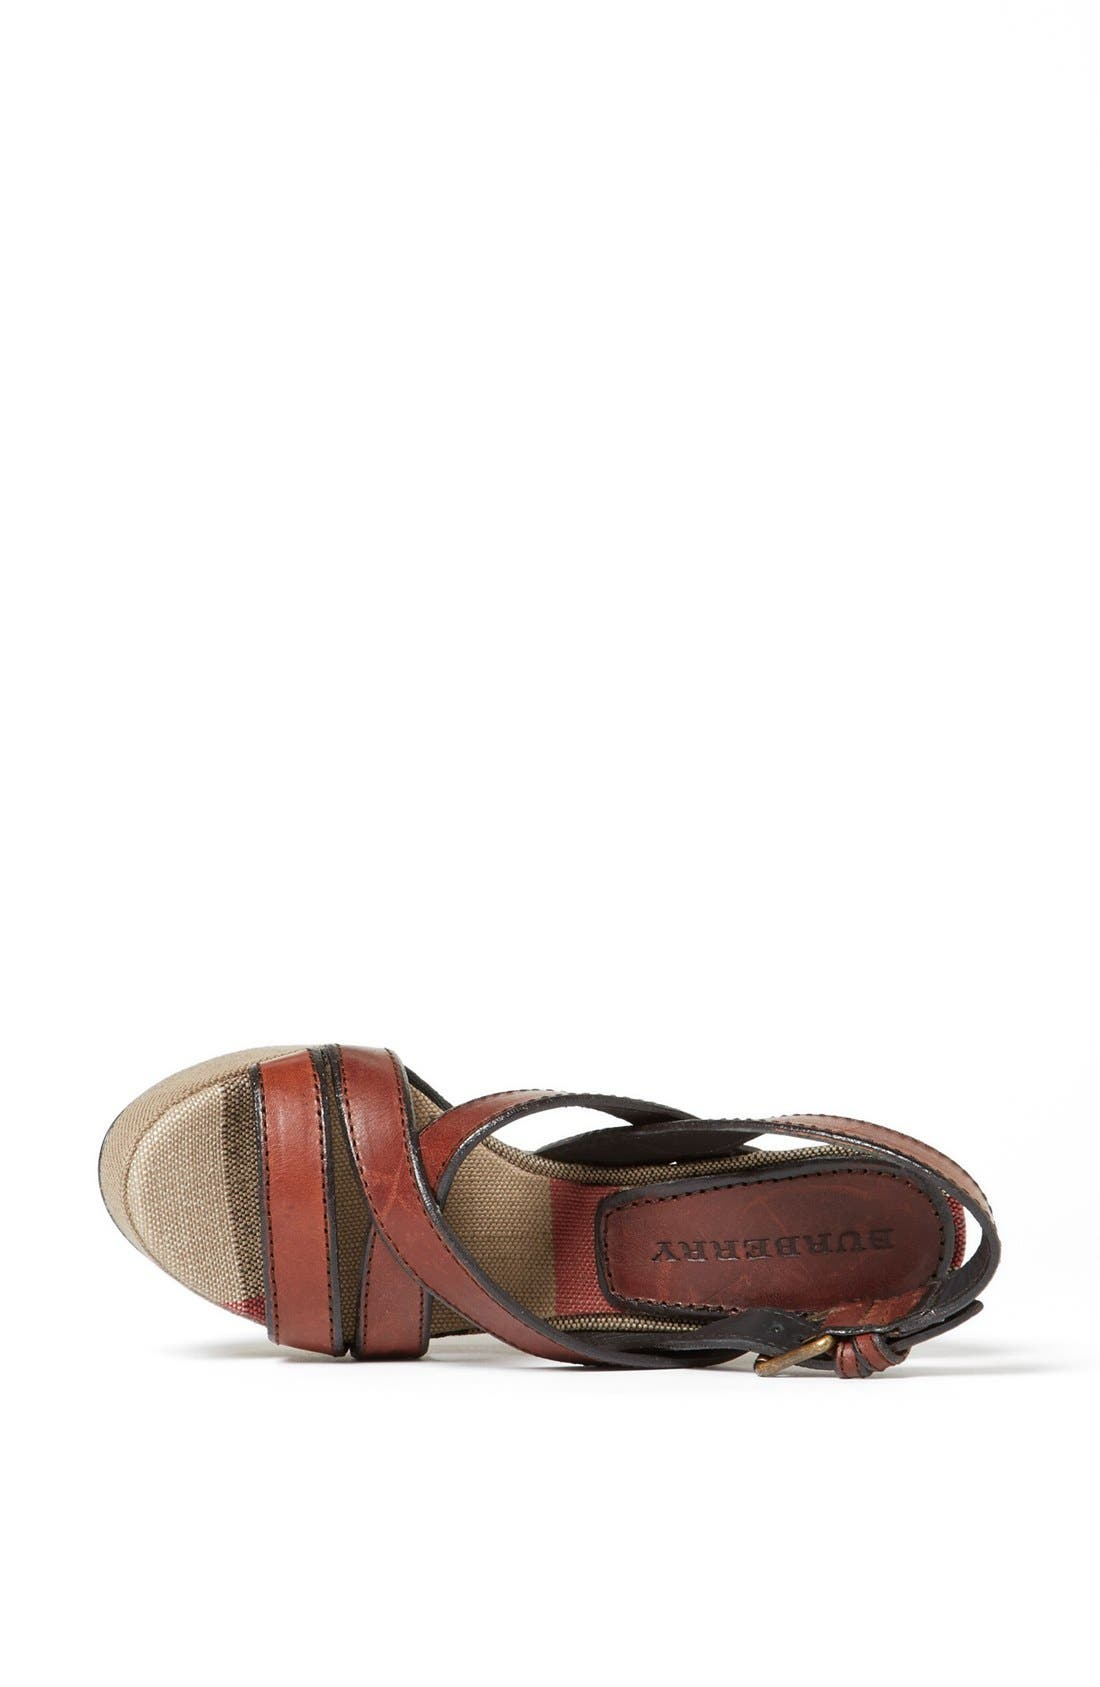 Alternate Image 4  - Burberry 'Warlow' Leather Sandal